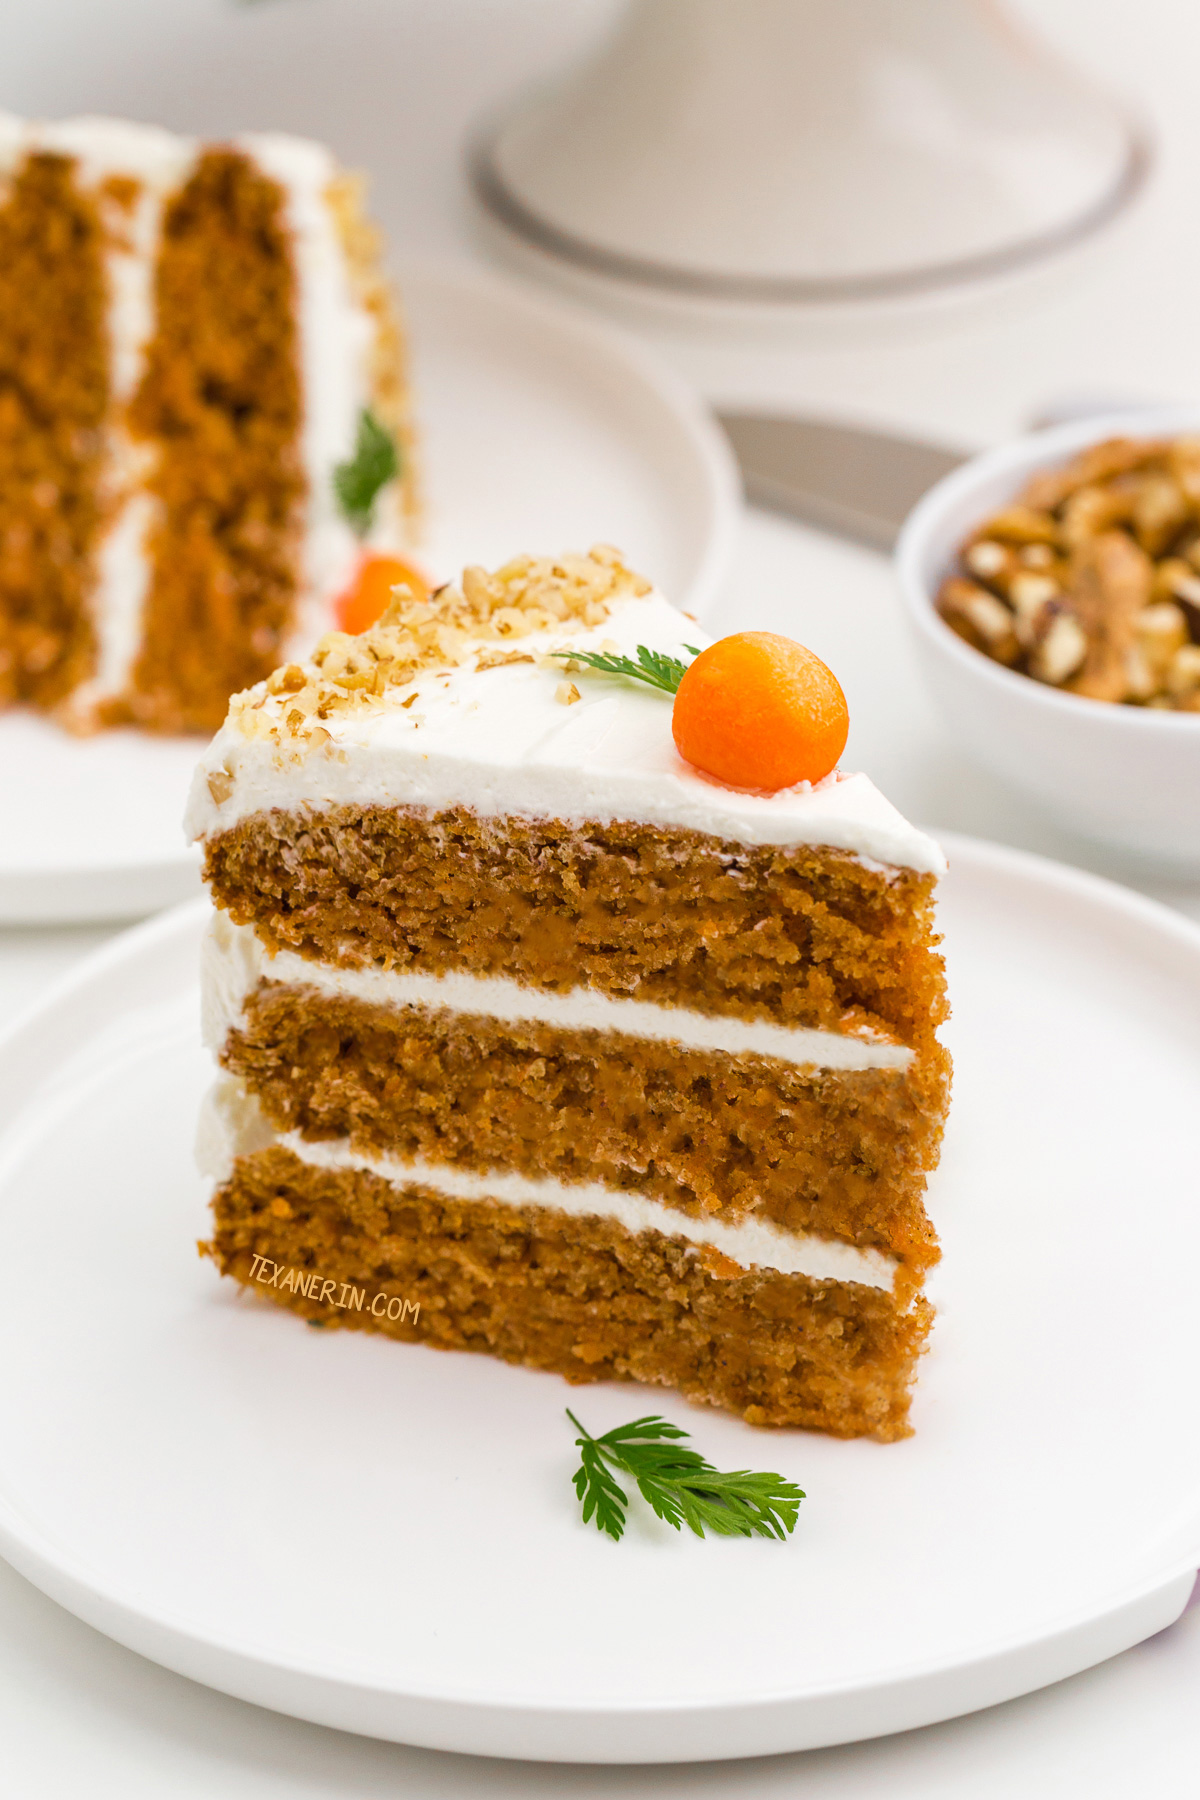 Healthy Carrot Cake Texanerin Baking